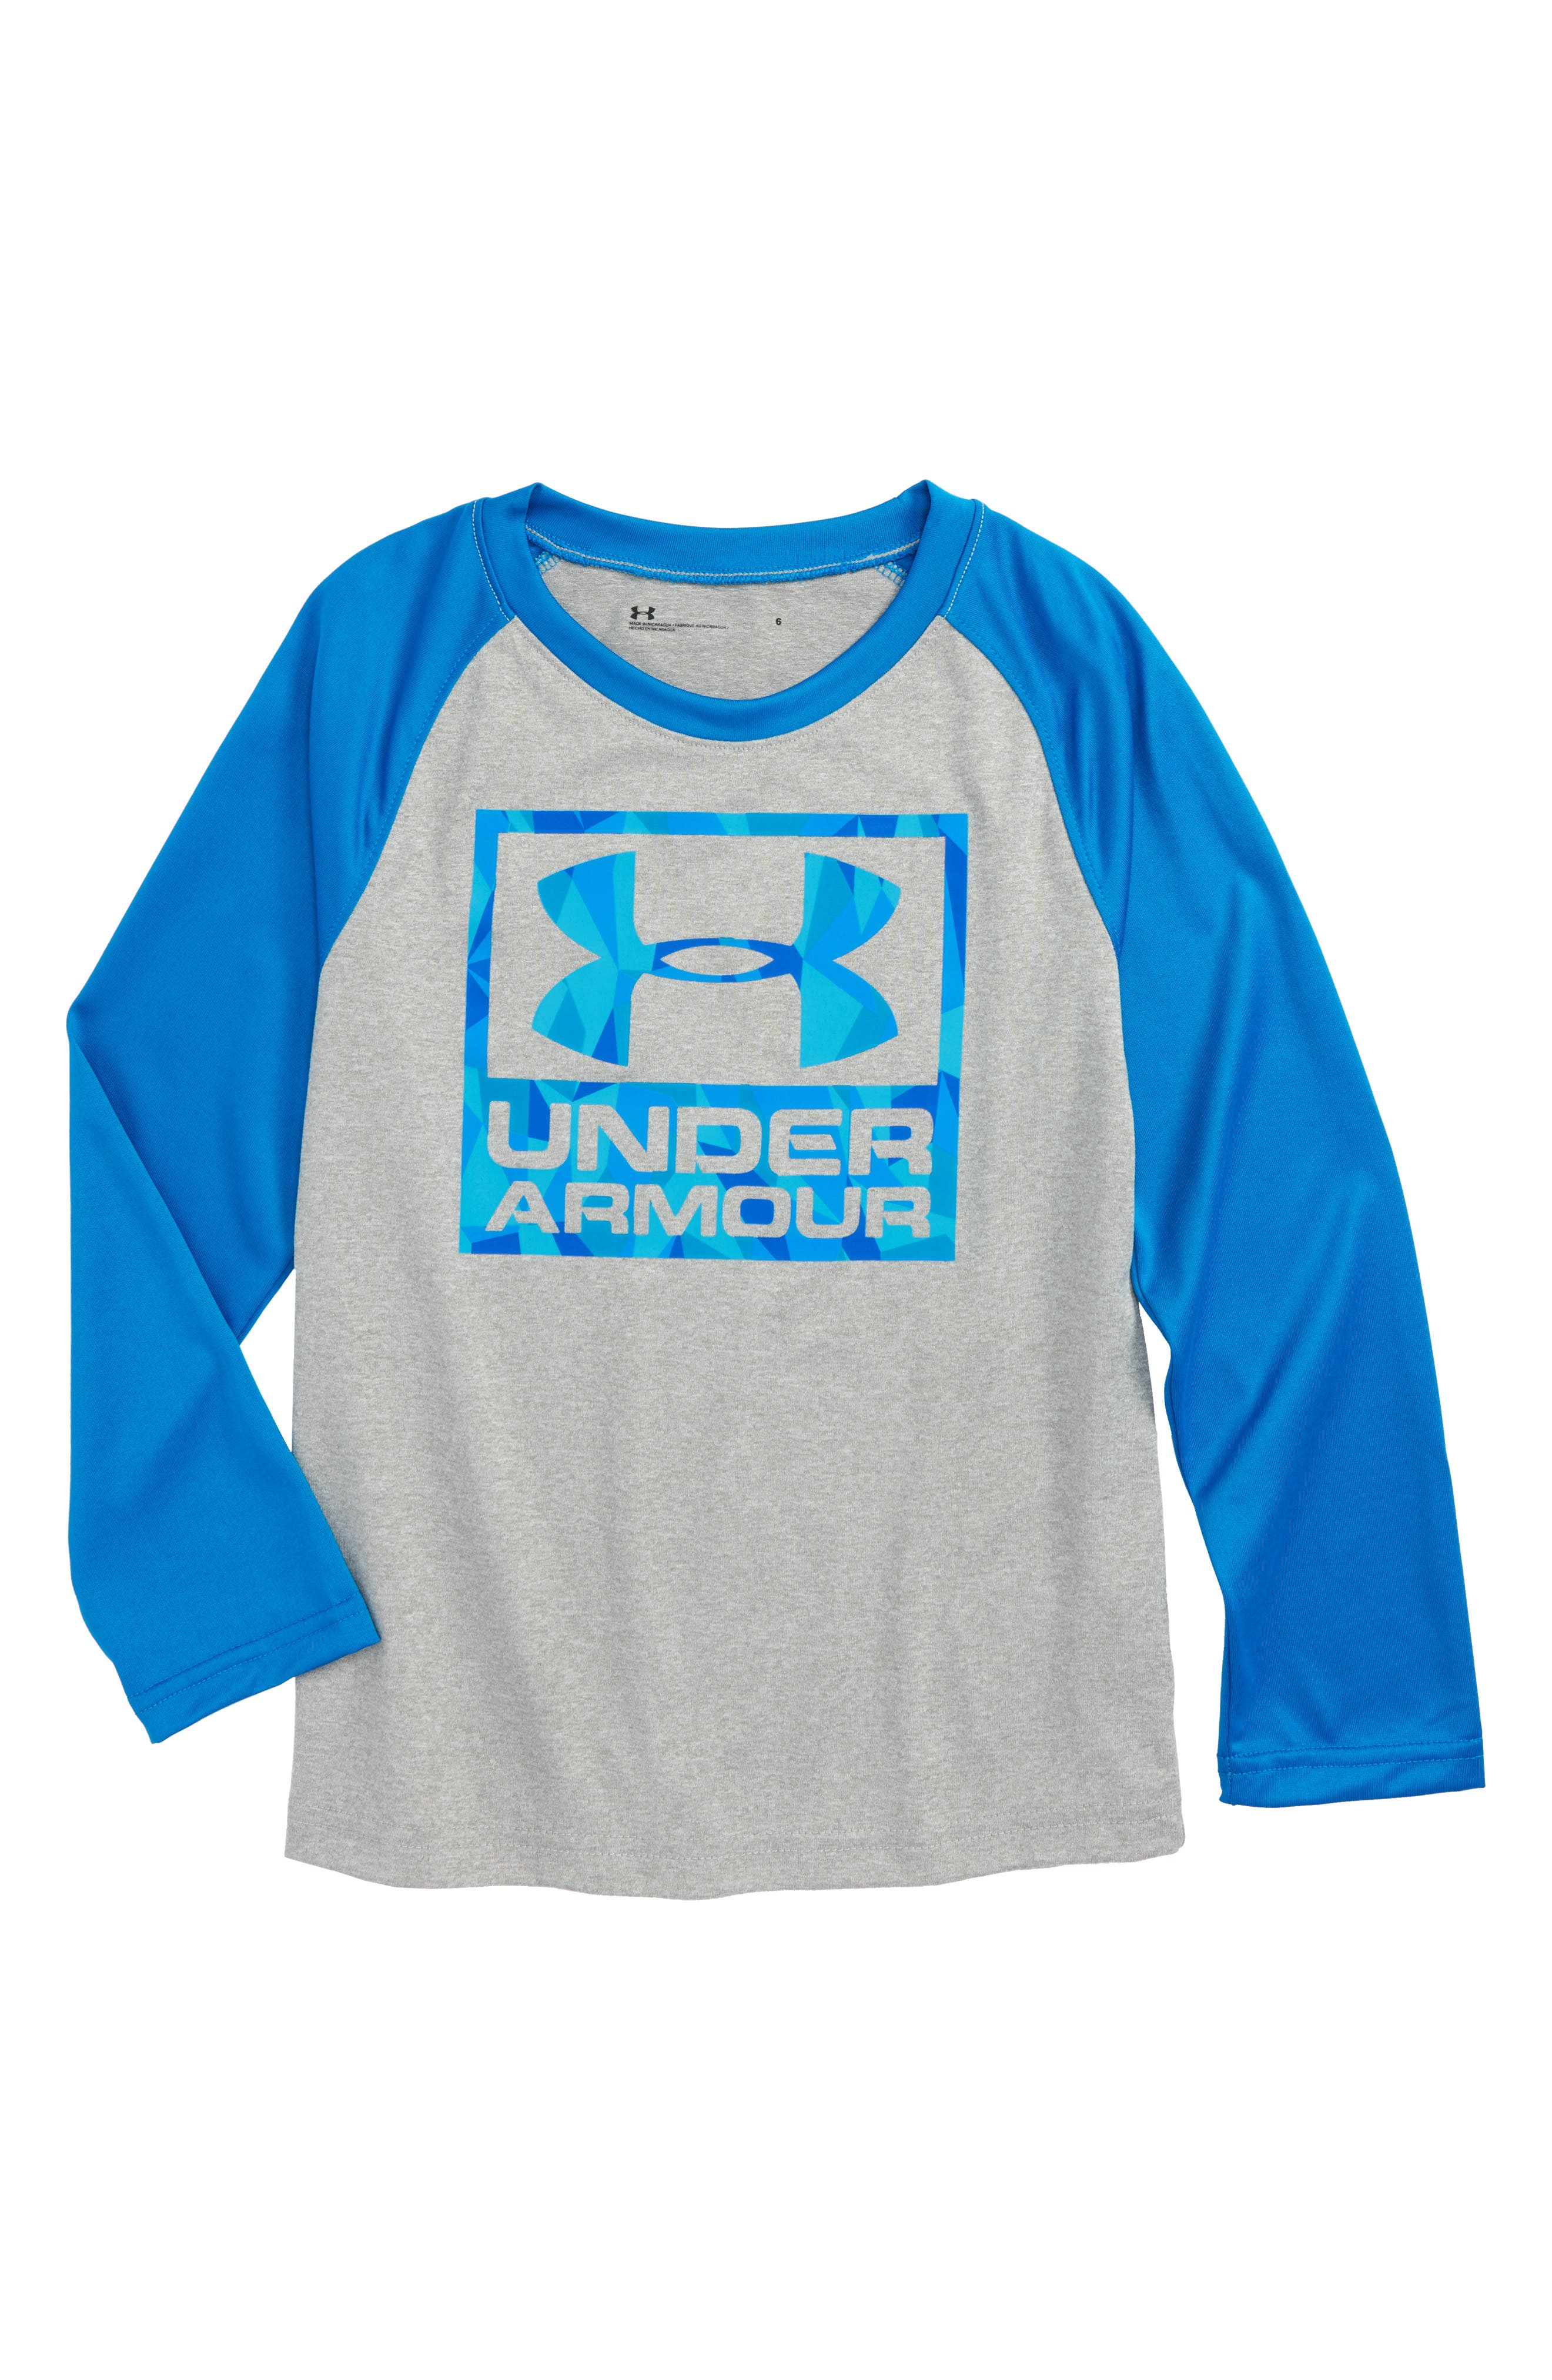 Under Armour Geo Cache Long Sleeve Raglan T-Shirt (Toddler Boys & Little Boys)